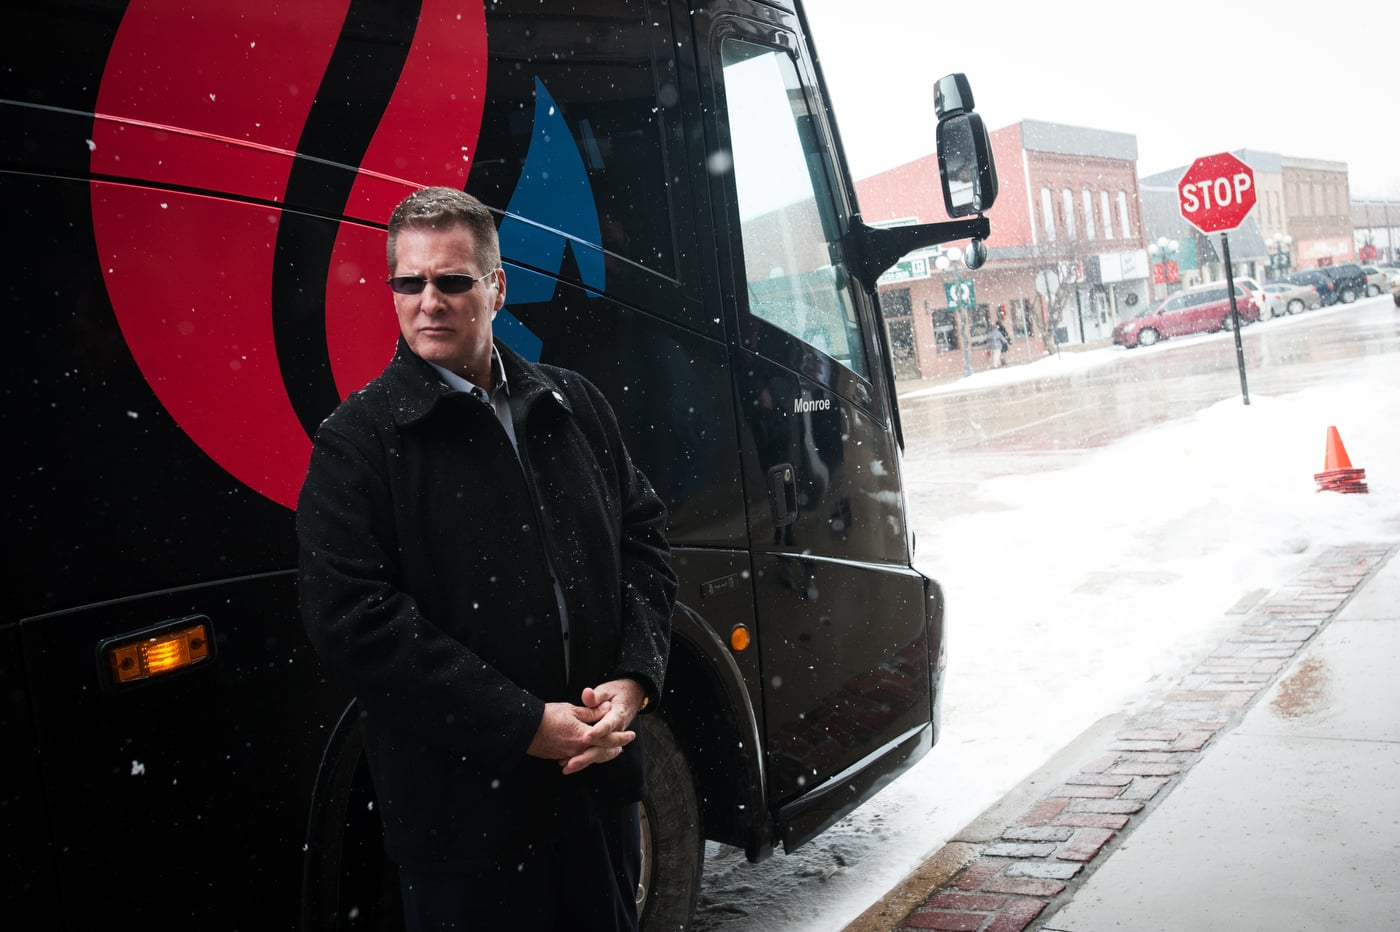 Retired United States Secret Service Special Agent Brian Hunter, a private security contractor for U.S. Republican presidential candidate Ted Cruz, stands outside the campaign bus ahead of a stop at Lantern Coffeehouse in Sibley, Iowa January 6, 2016.